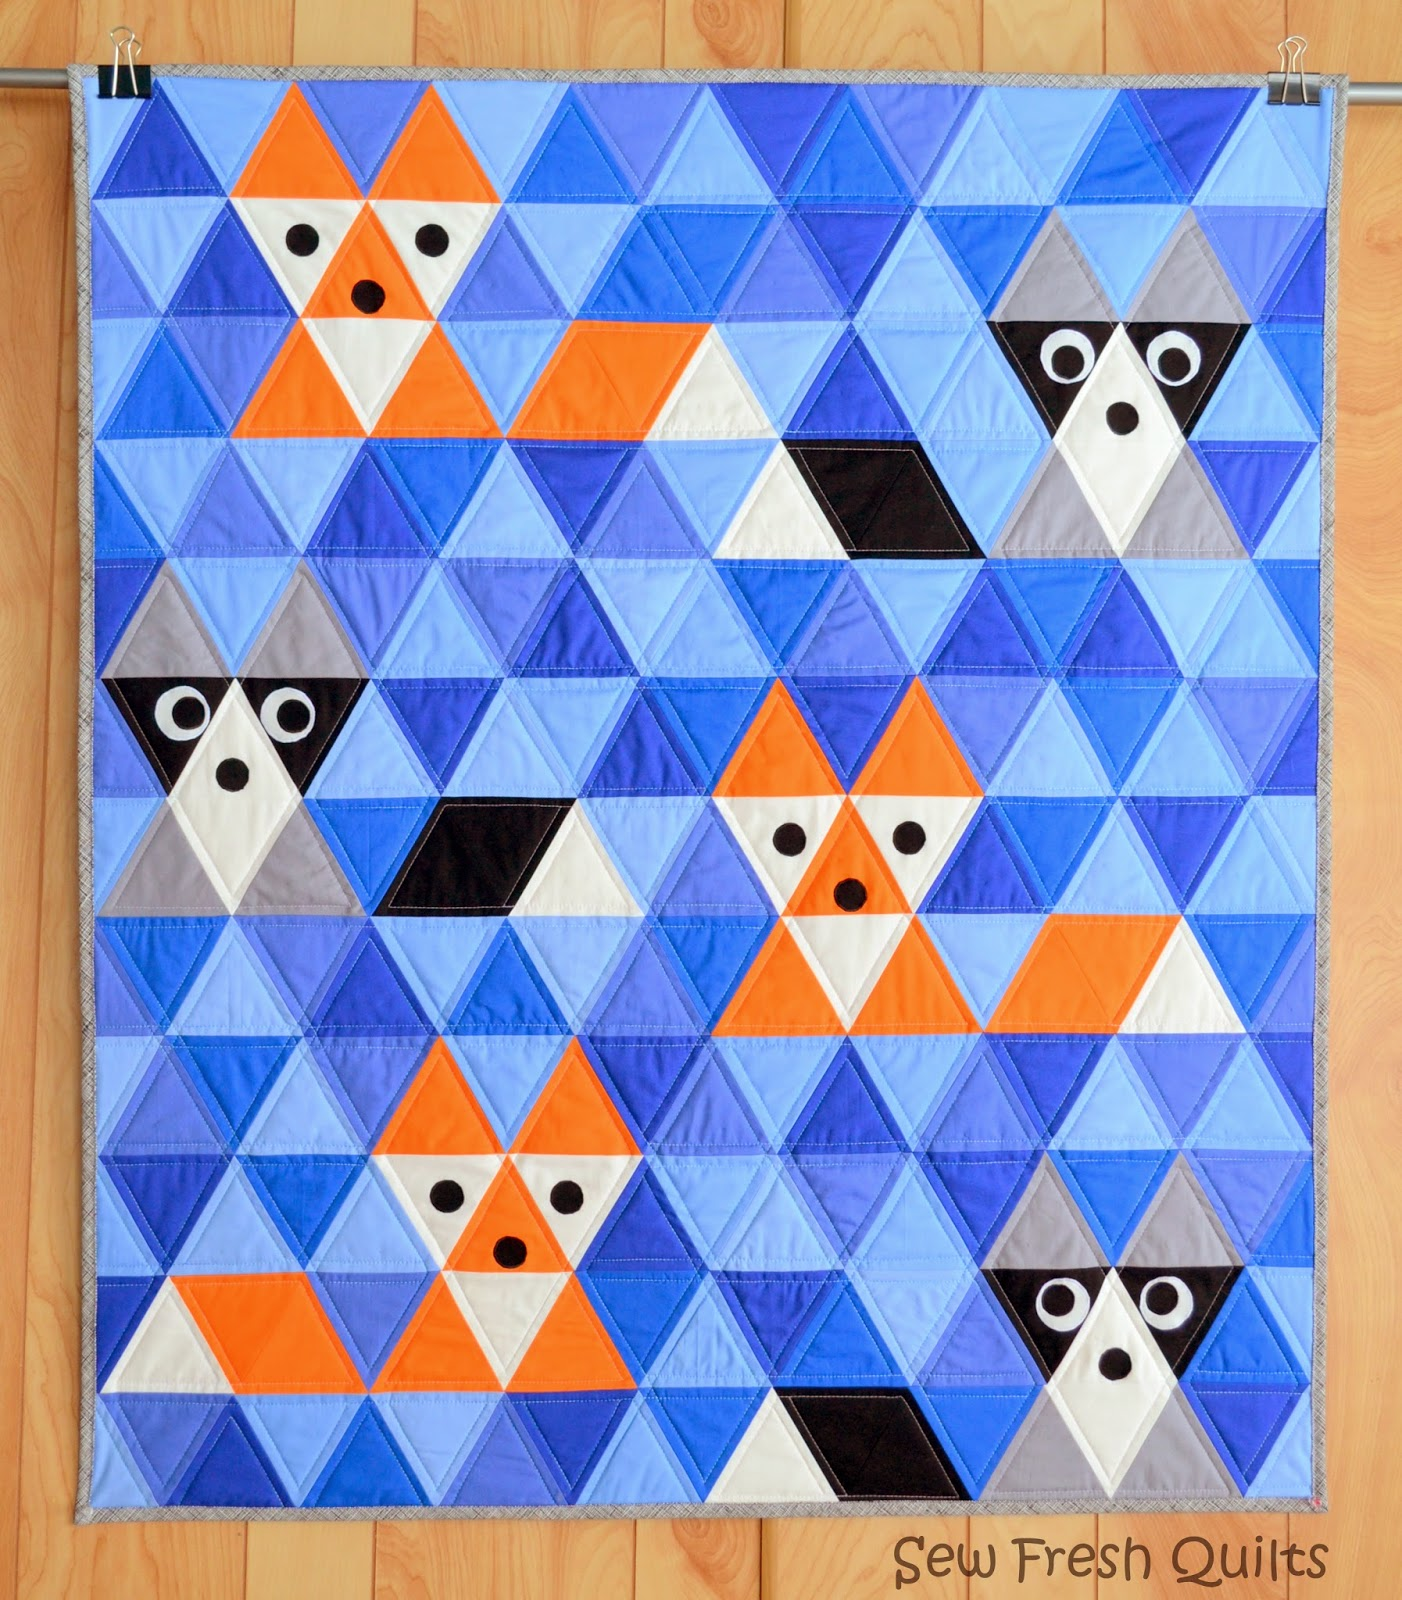 Sew Fresh Quilts Equilateral Triangle Quilt Along